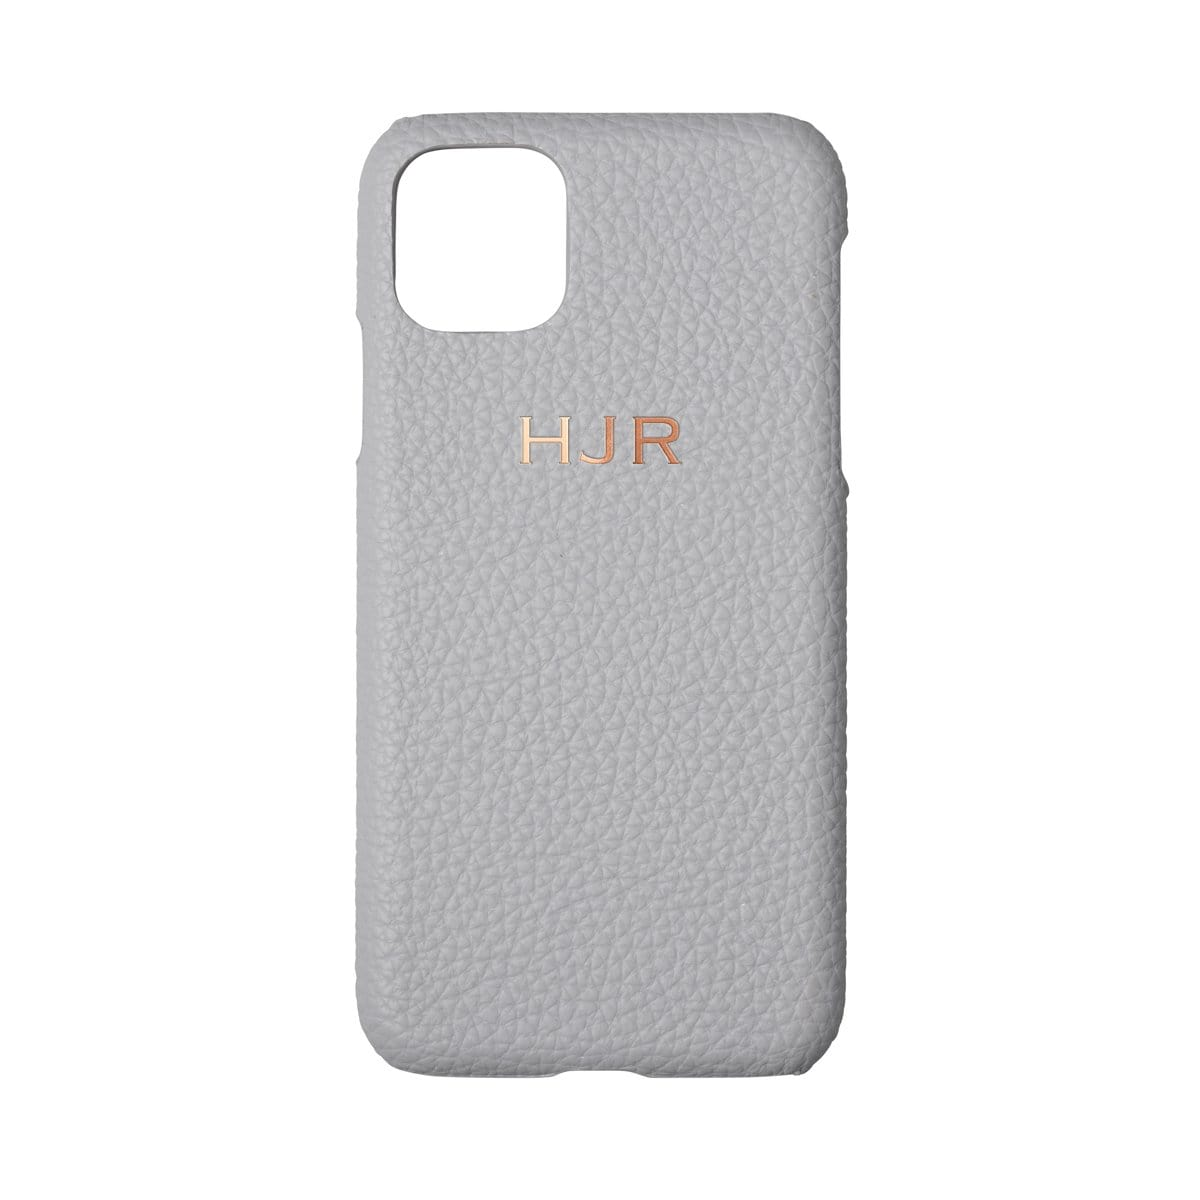 Parma Grey Phone Case (iPhone 11 Pro)